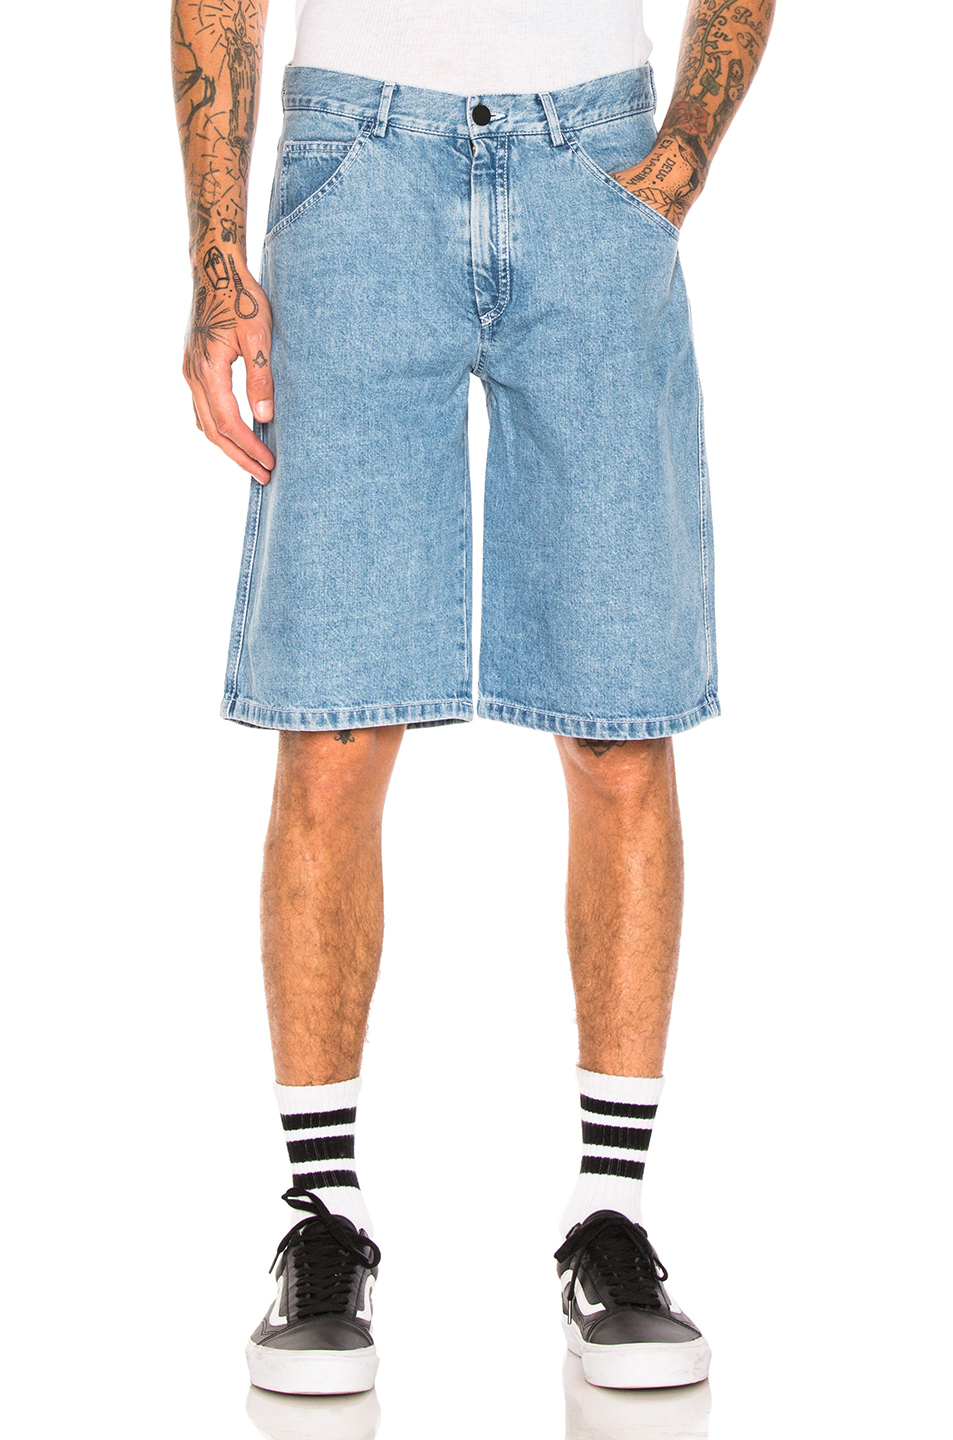 Gosha Rubchinskiy Yin Yang Denim Shorts in Blue